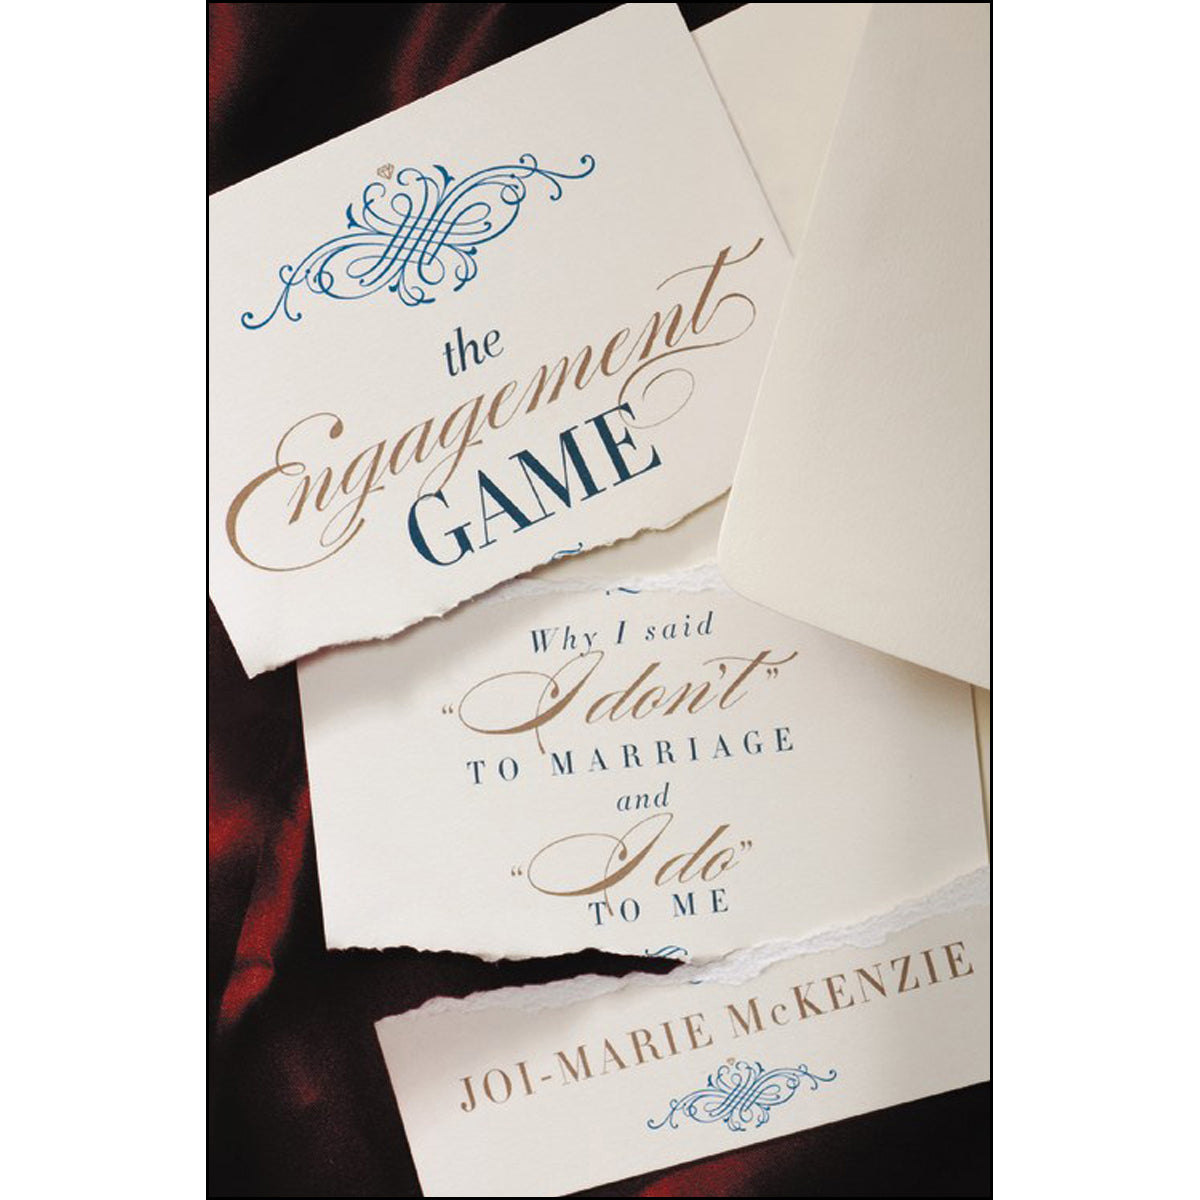 The Engagement Game: Why I Said I Don't To Marriage And I Do To Me (Paperback)